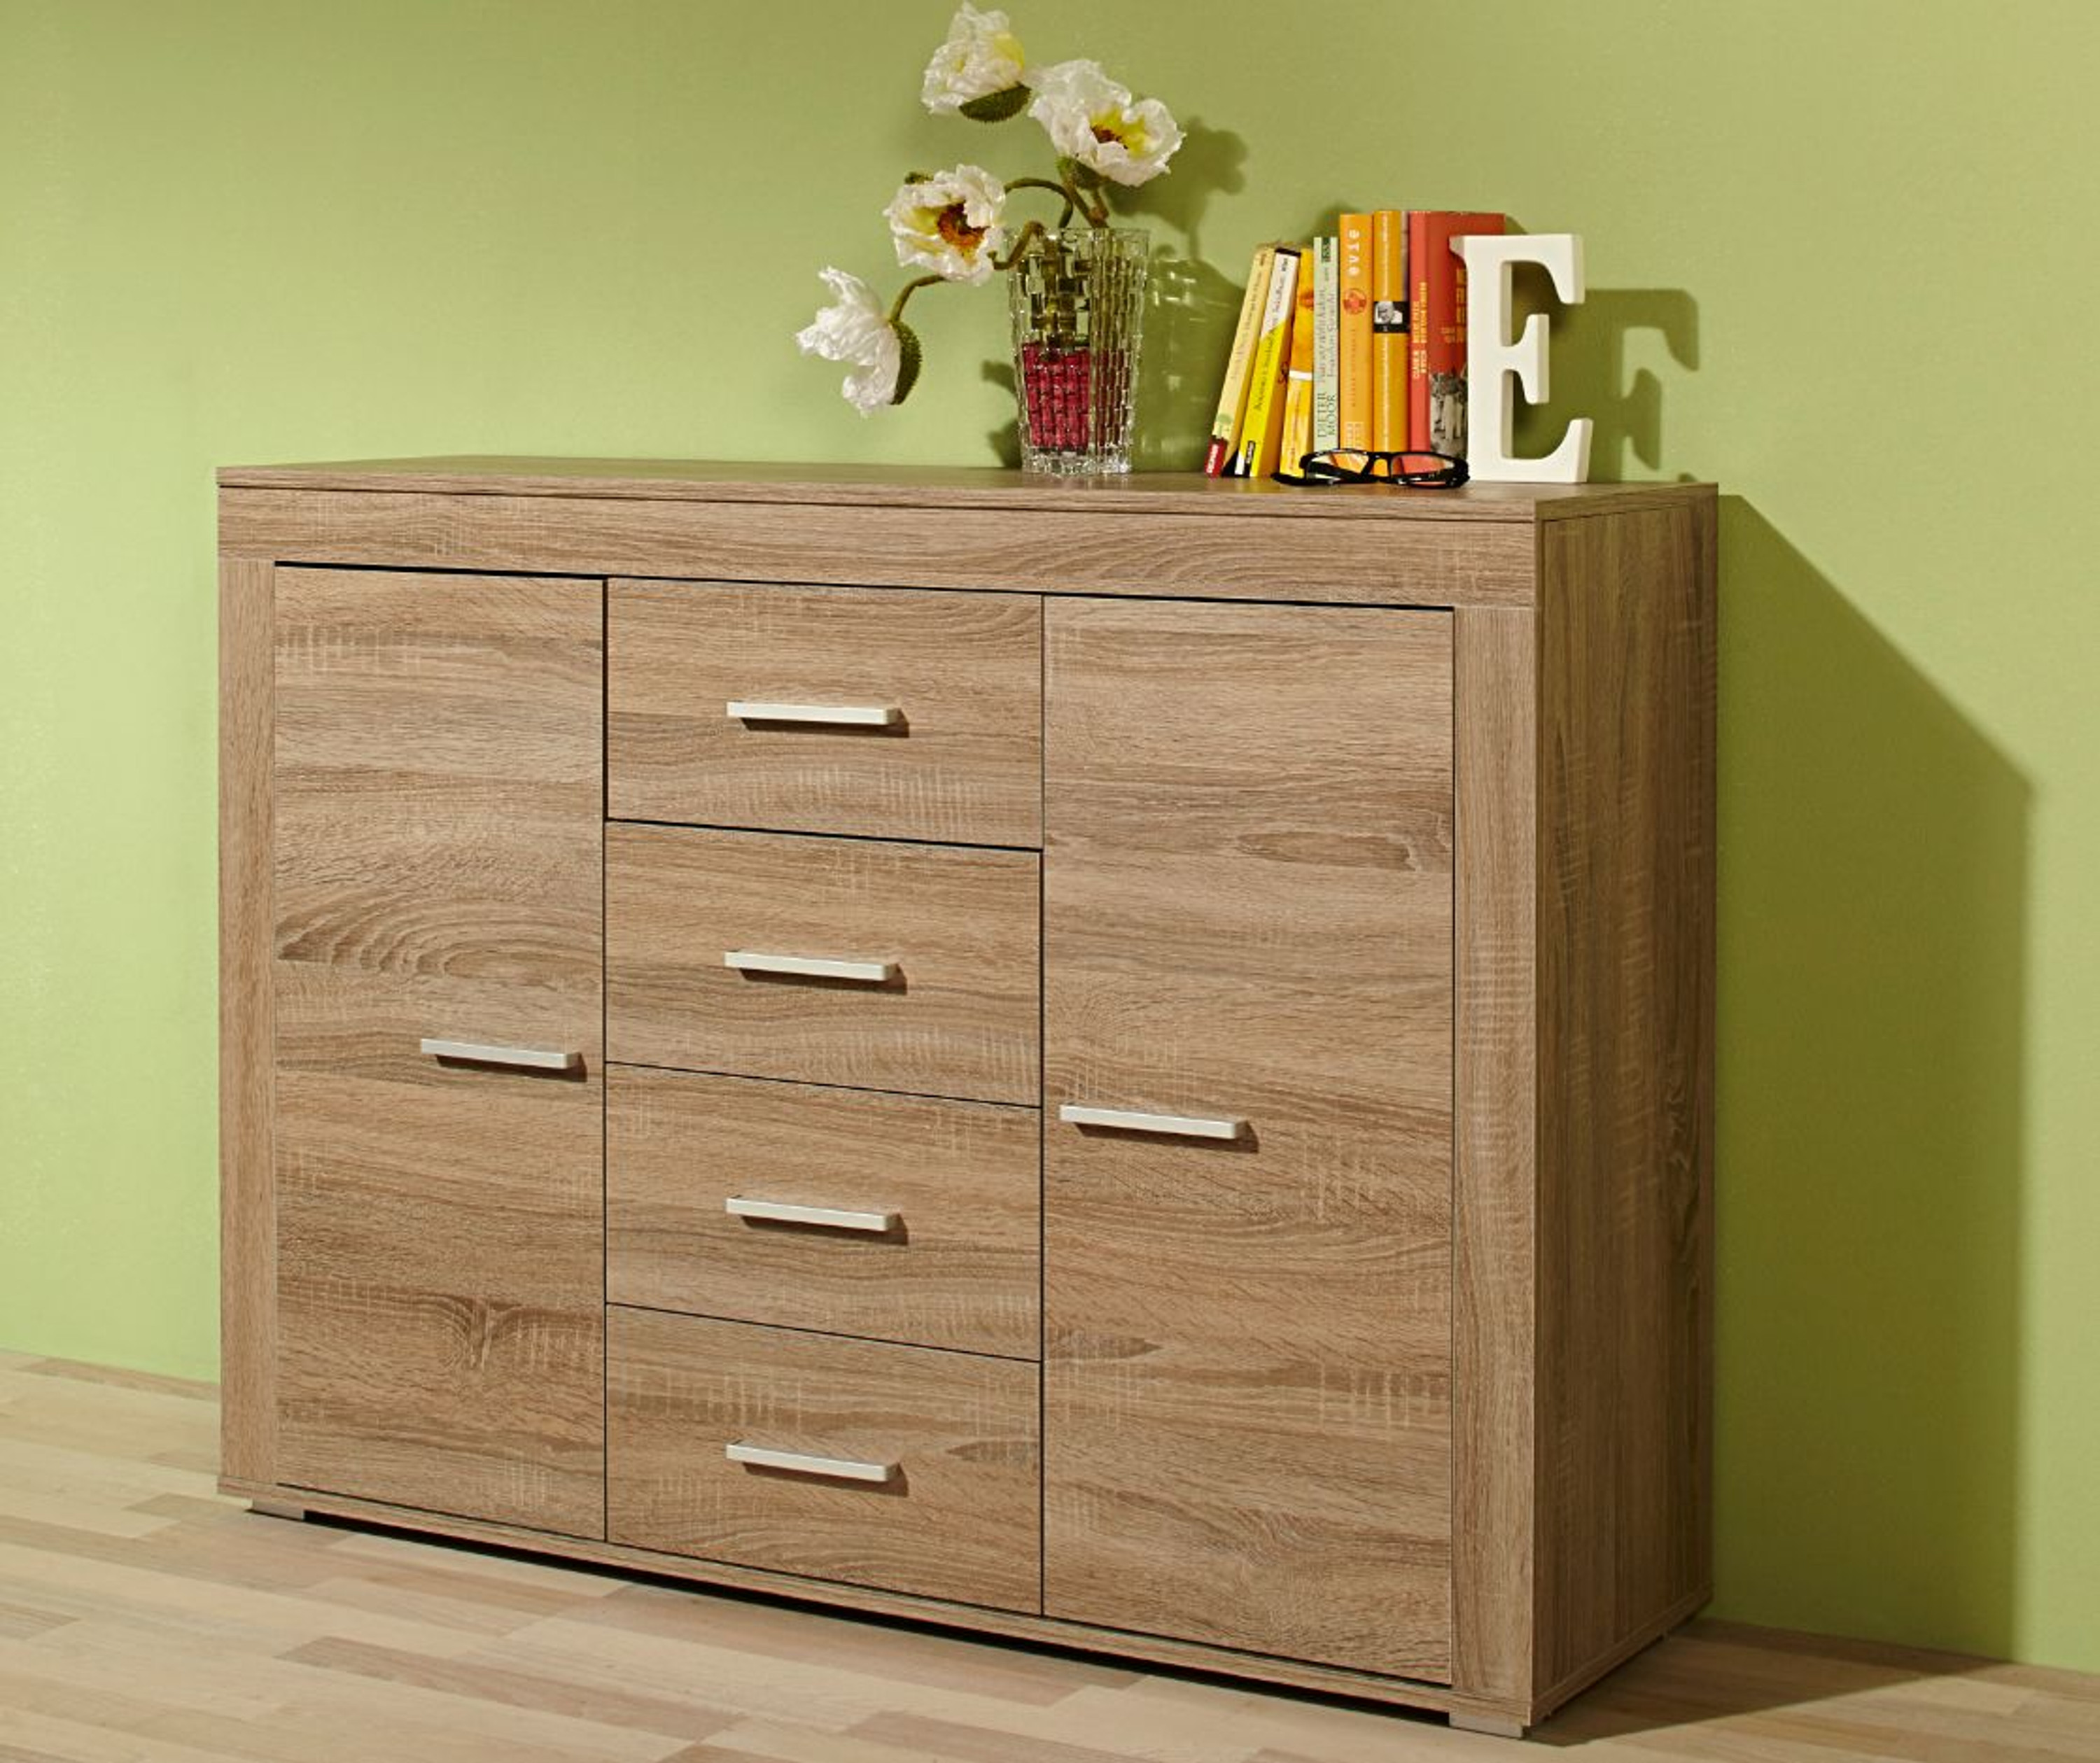 sideboard palma eiche sonoma s gerauh m bel wohnzimmer kommode sideboard. Black Bedroom Furniture Sets. Home Design Ideas